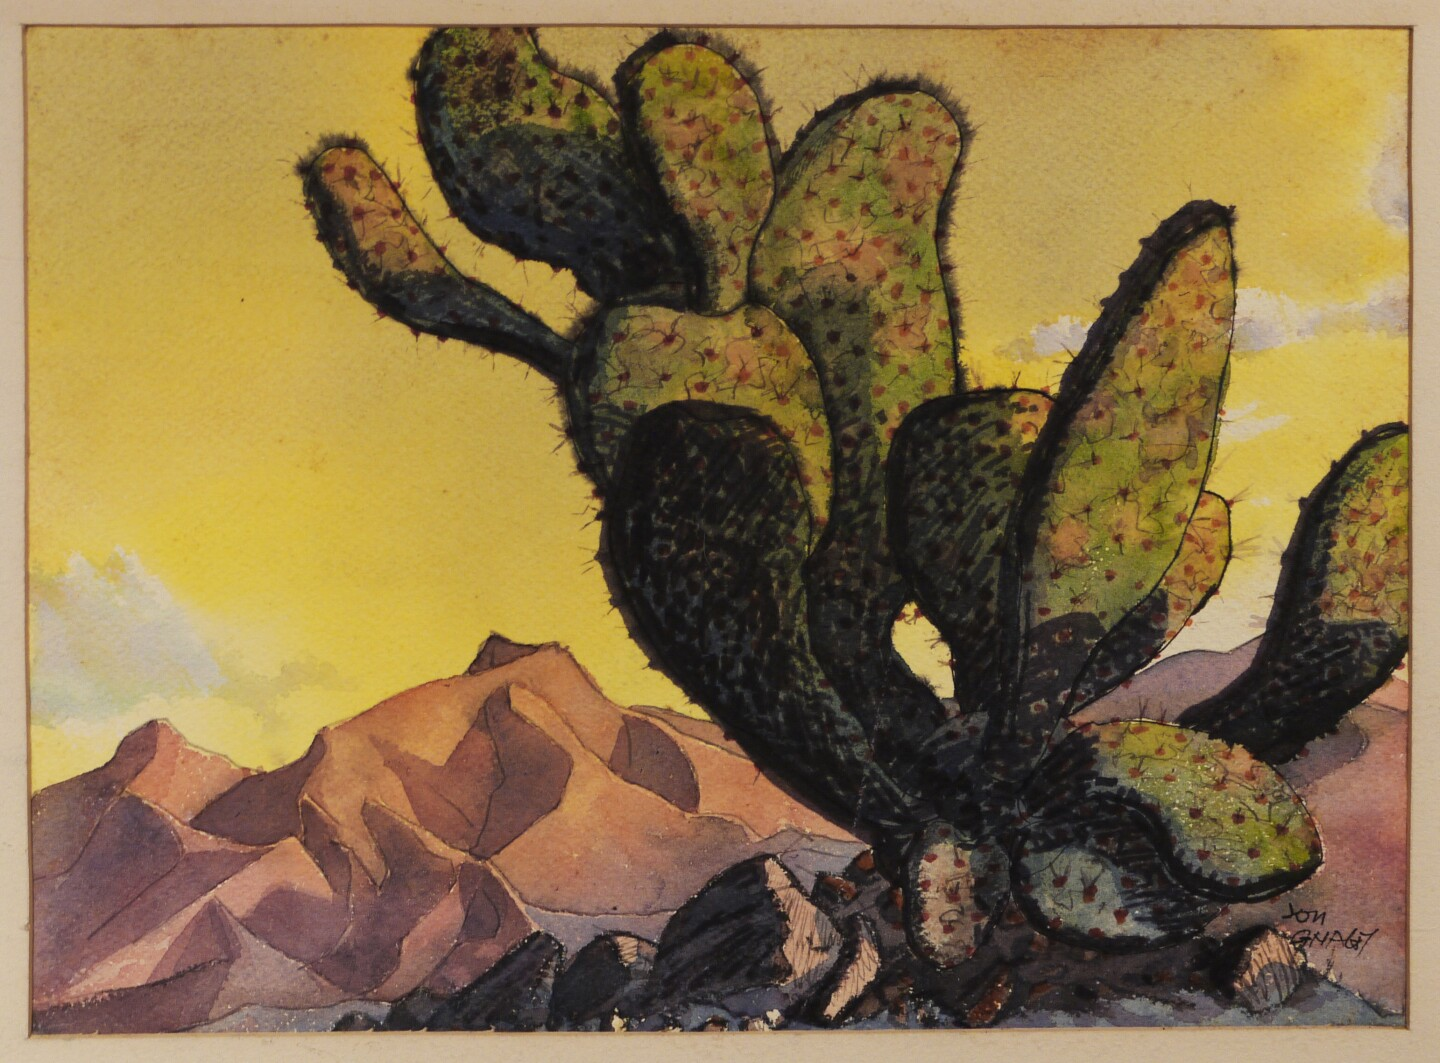 A painting by Jon Gnagy depicting a beavertail cactus. Behind it is a desert landscape painted in hues of pinks and yellows.